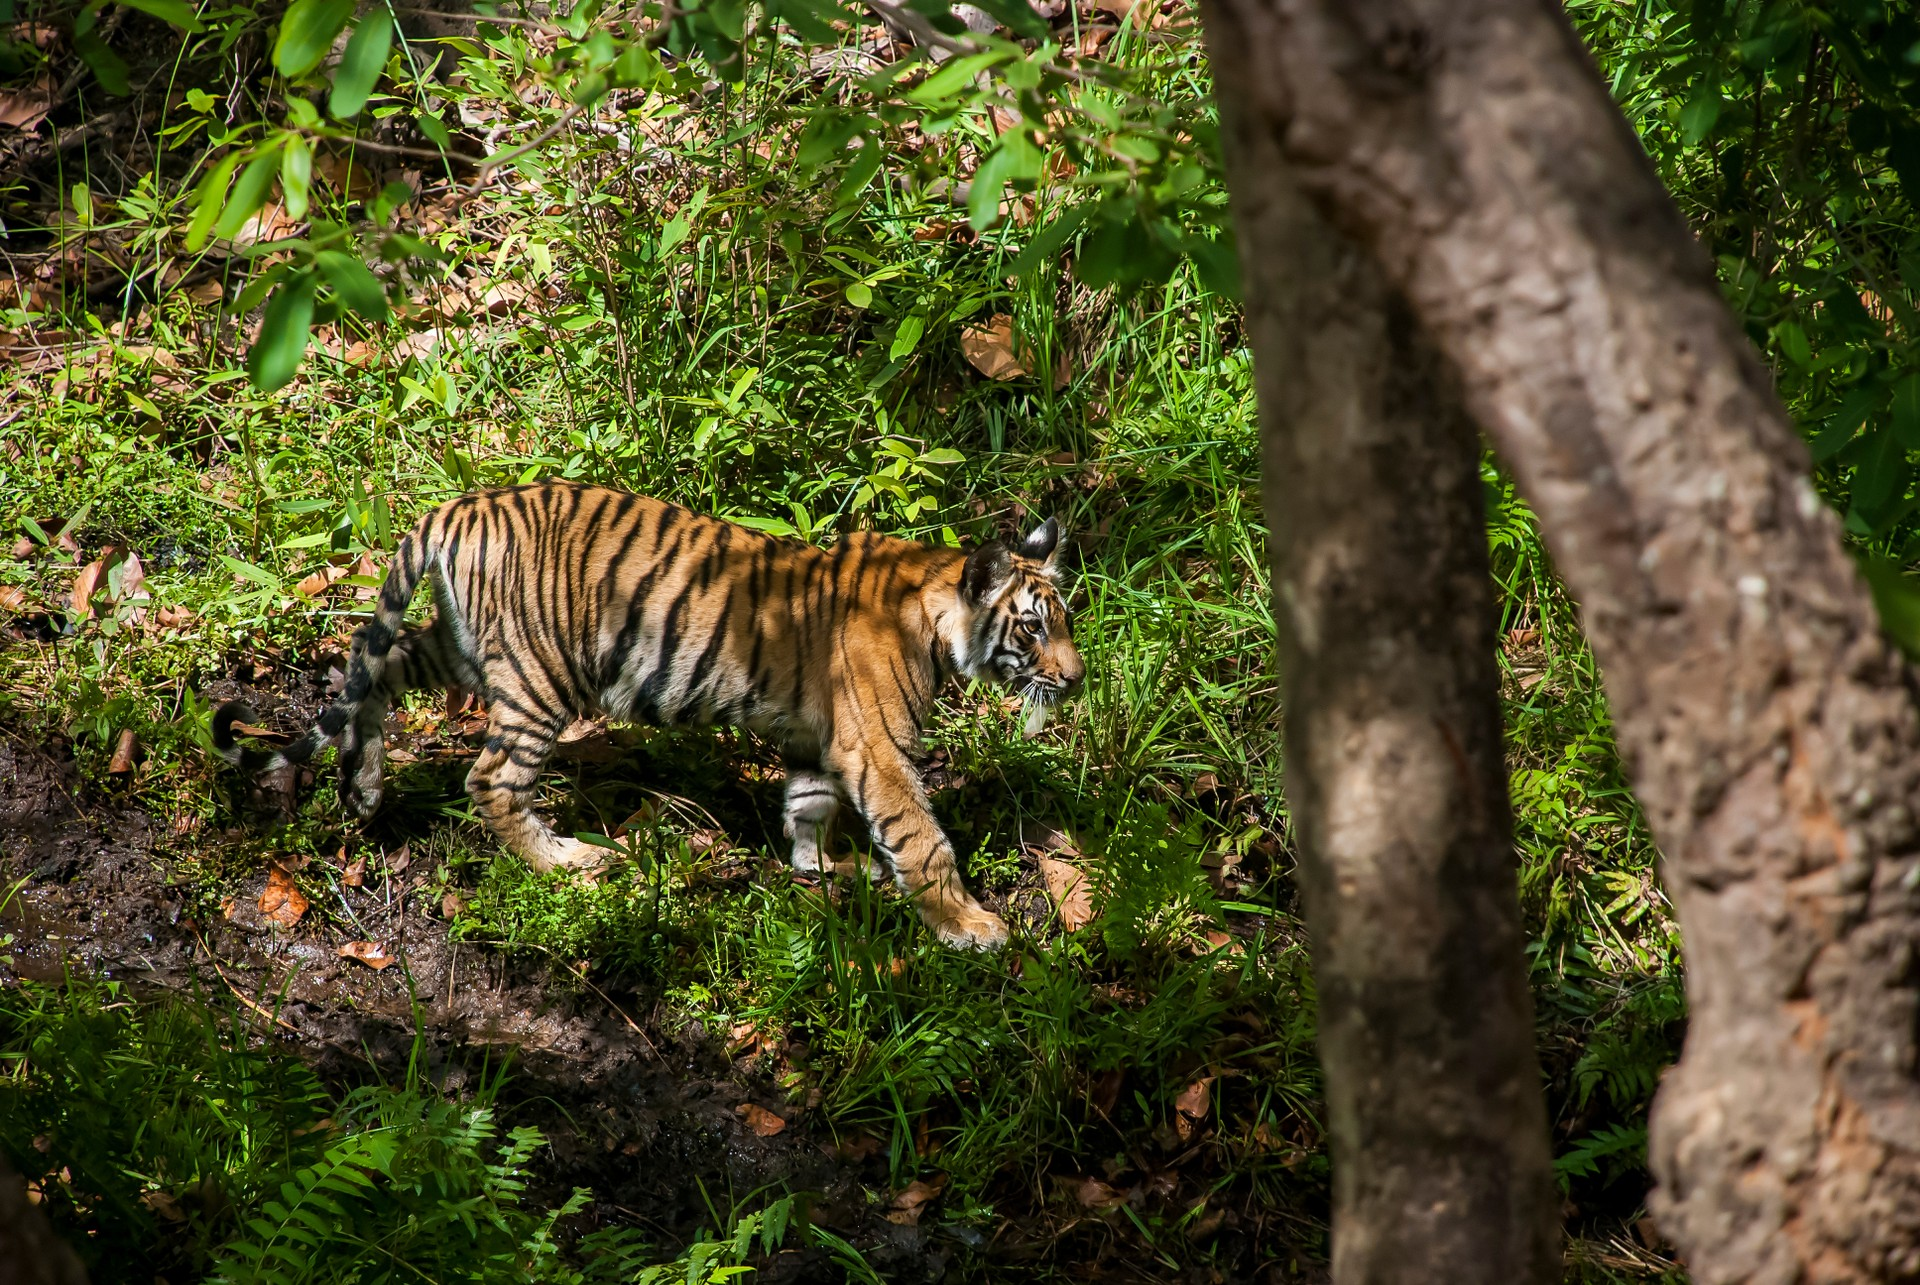 Tiger cub in Bandhavgarh National Park India